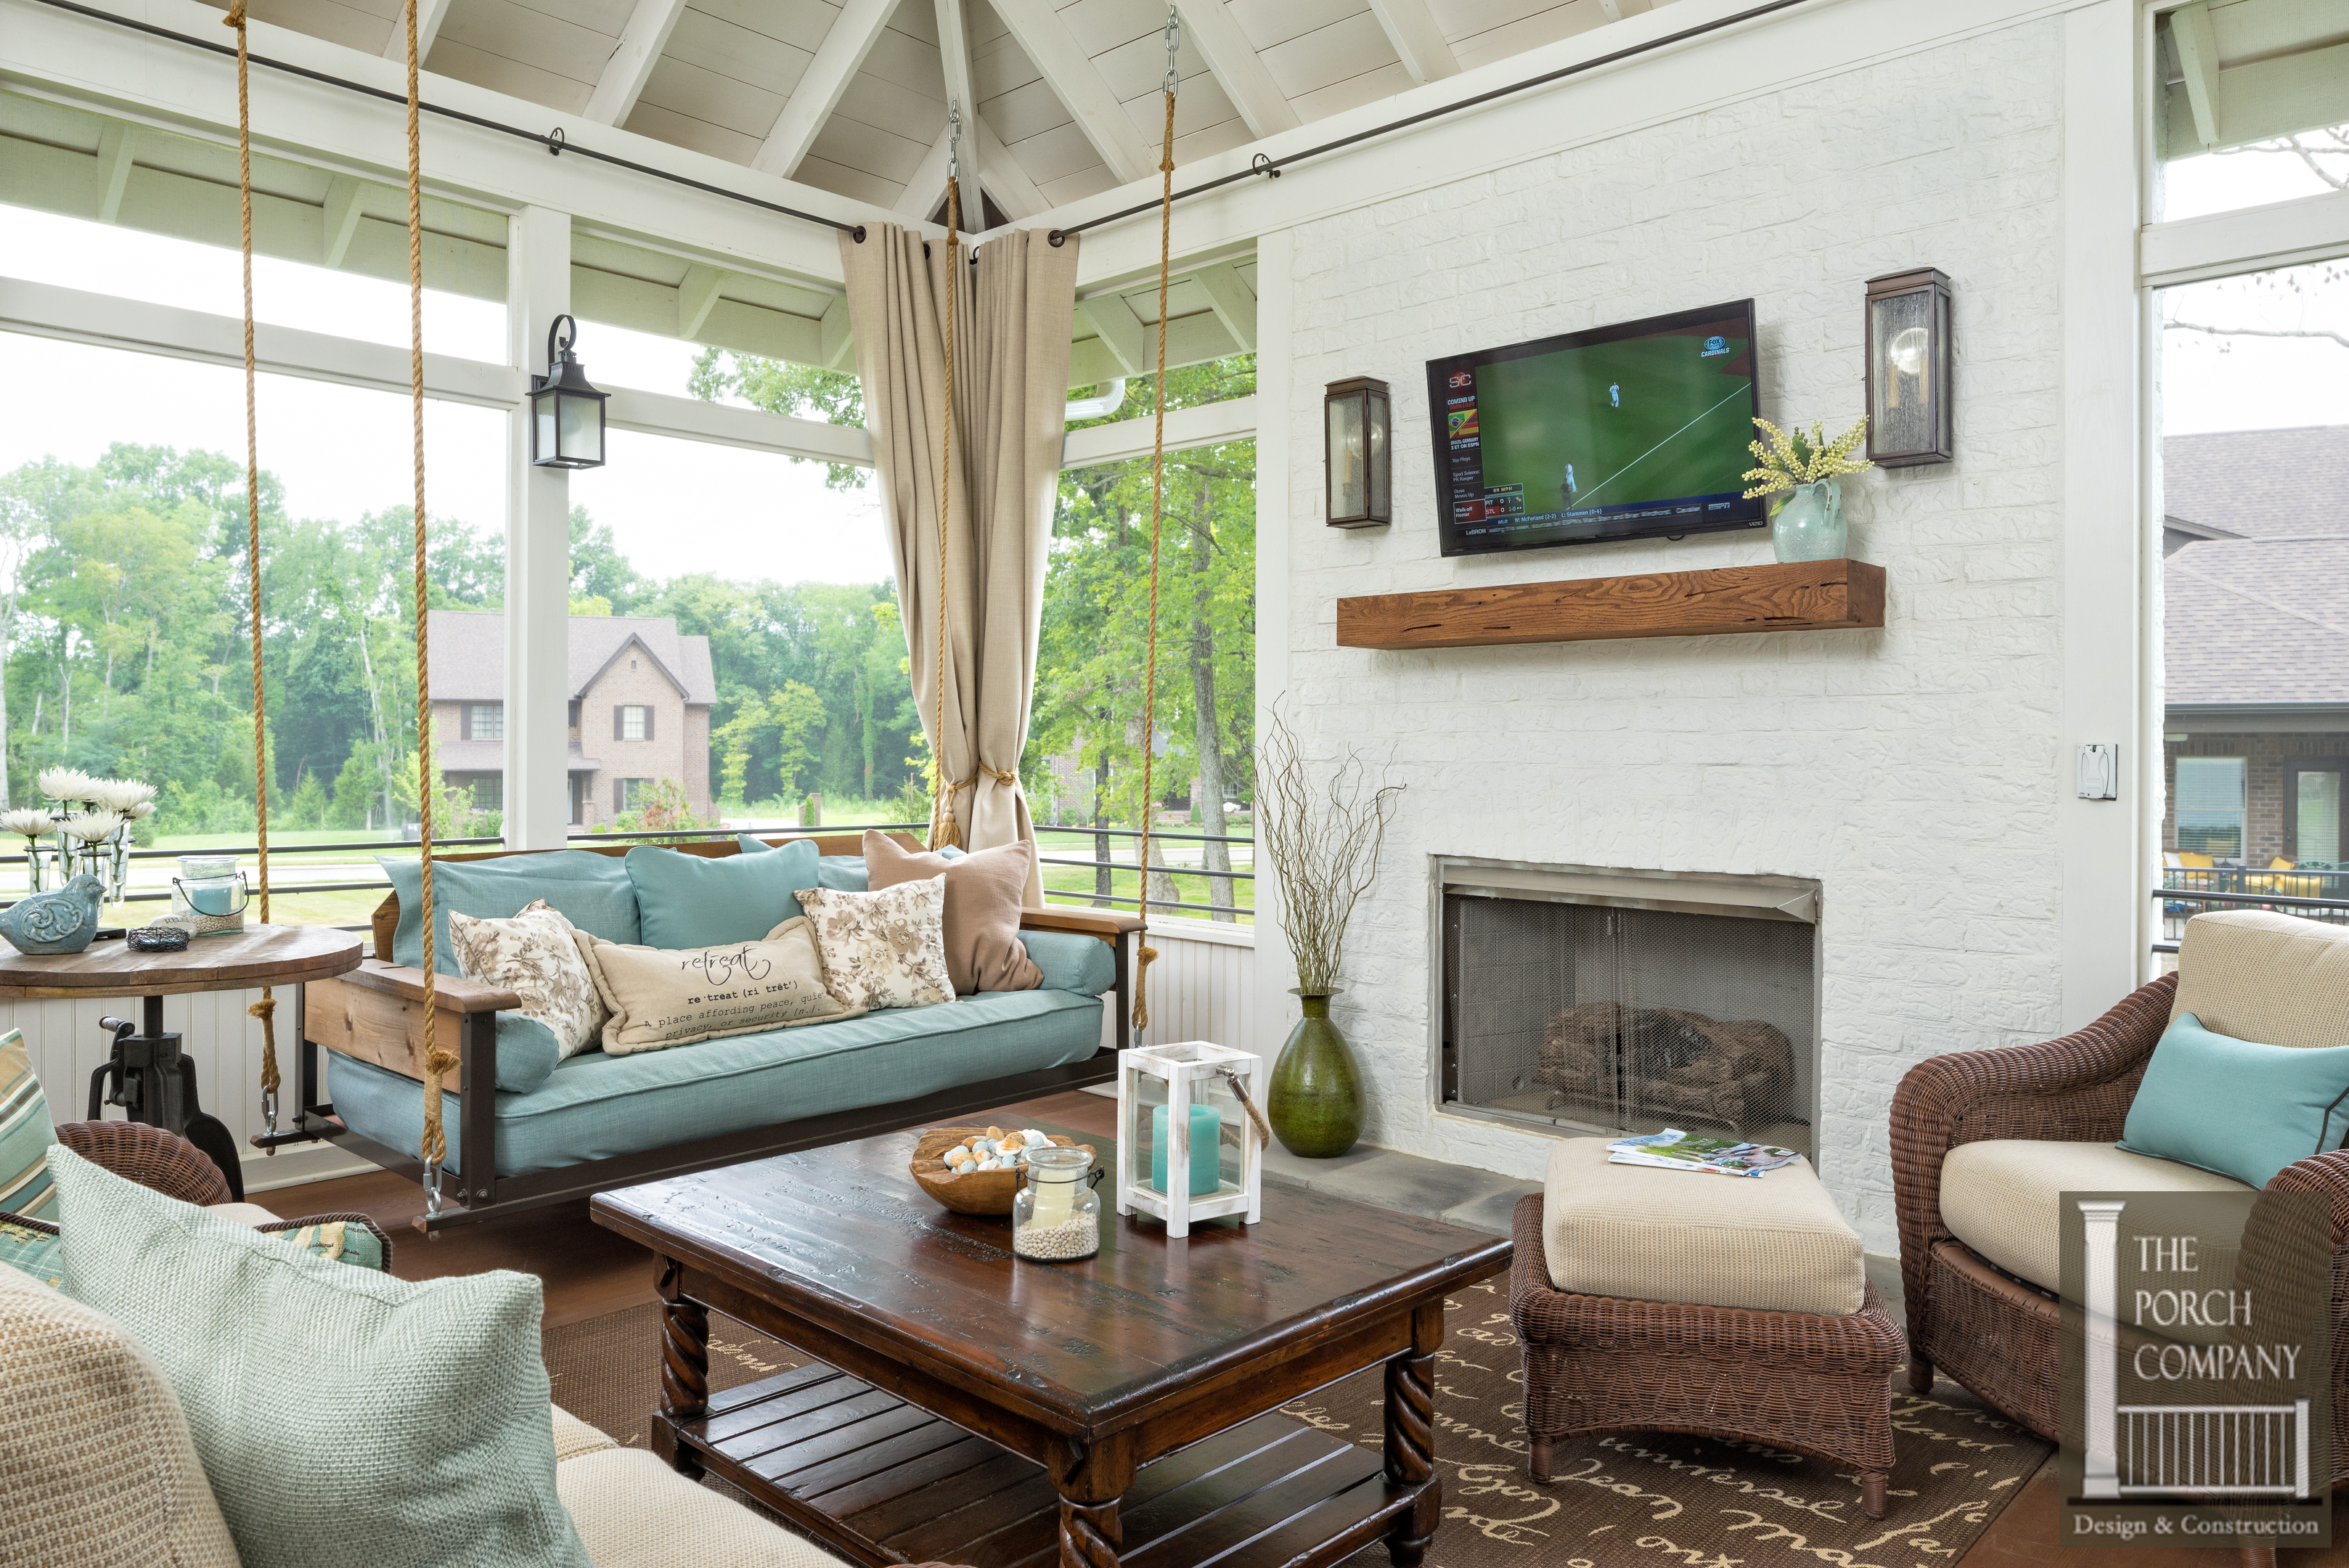 Porch company unique design features the porch for Screened in porch fireplace ideas